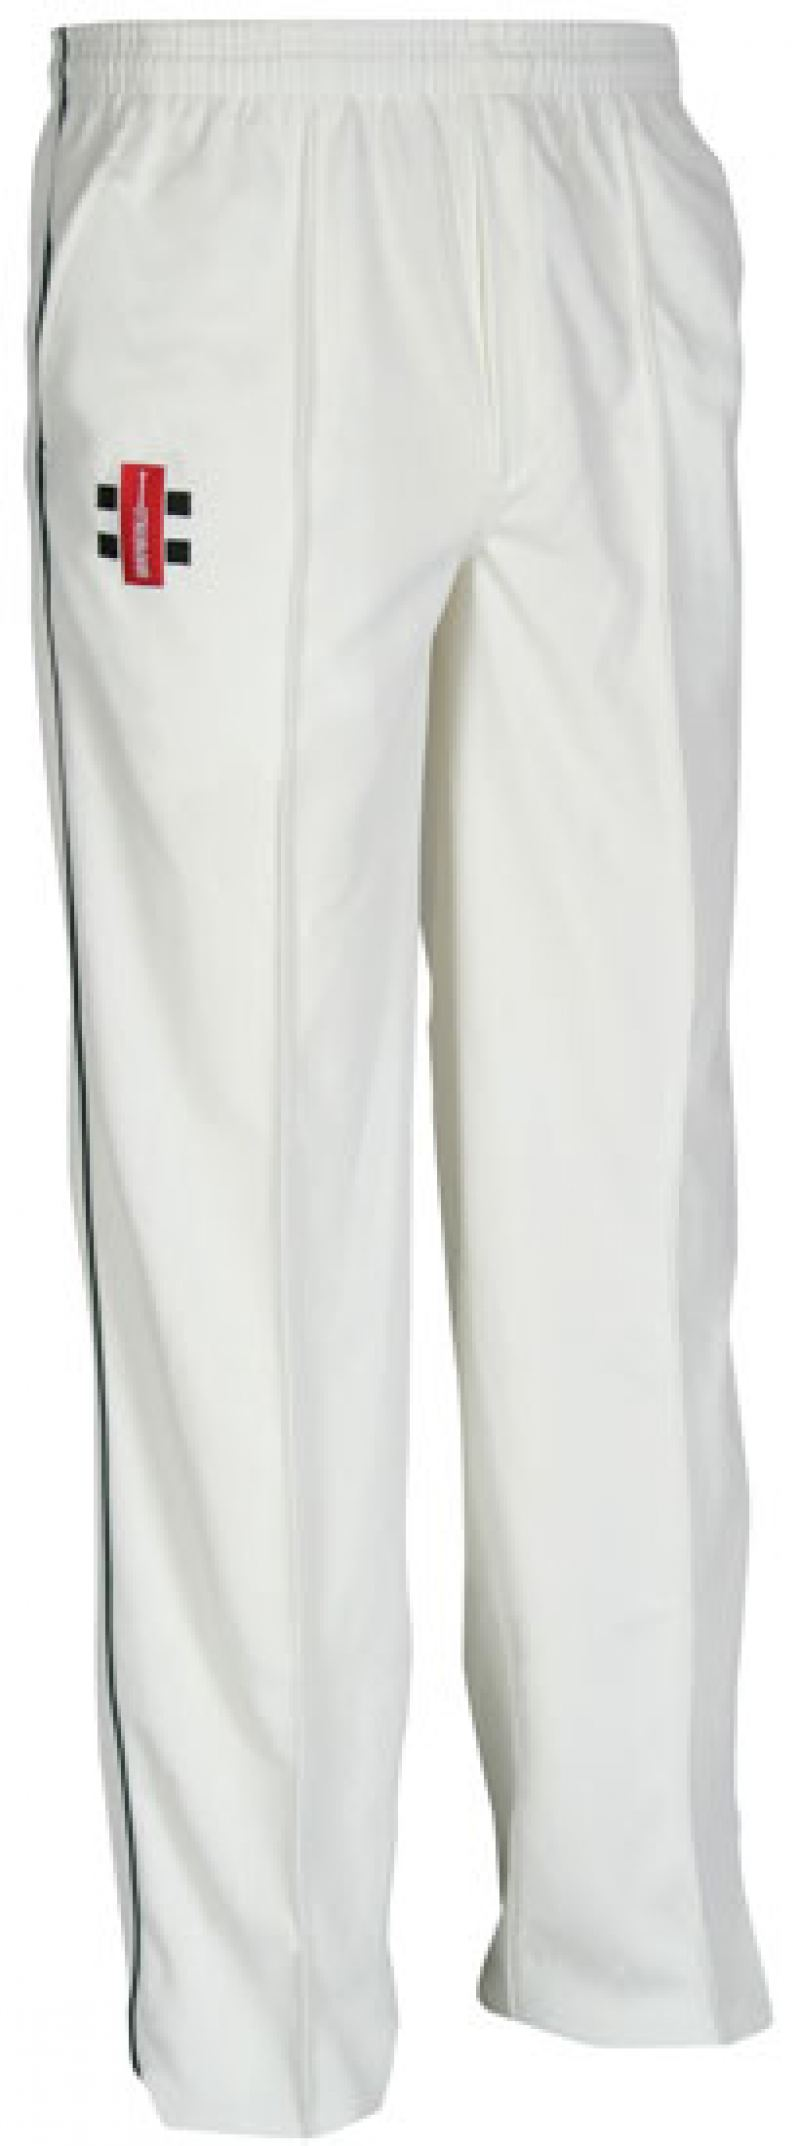 Gray Nicolls Matrix Match Trouser (Junior sizes)